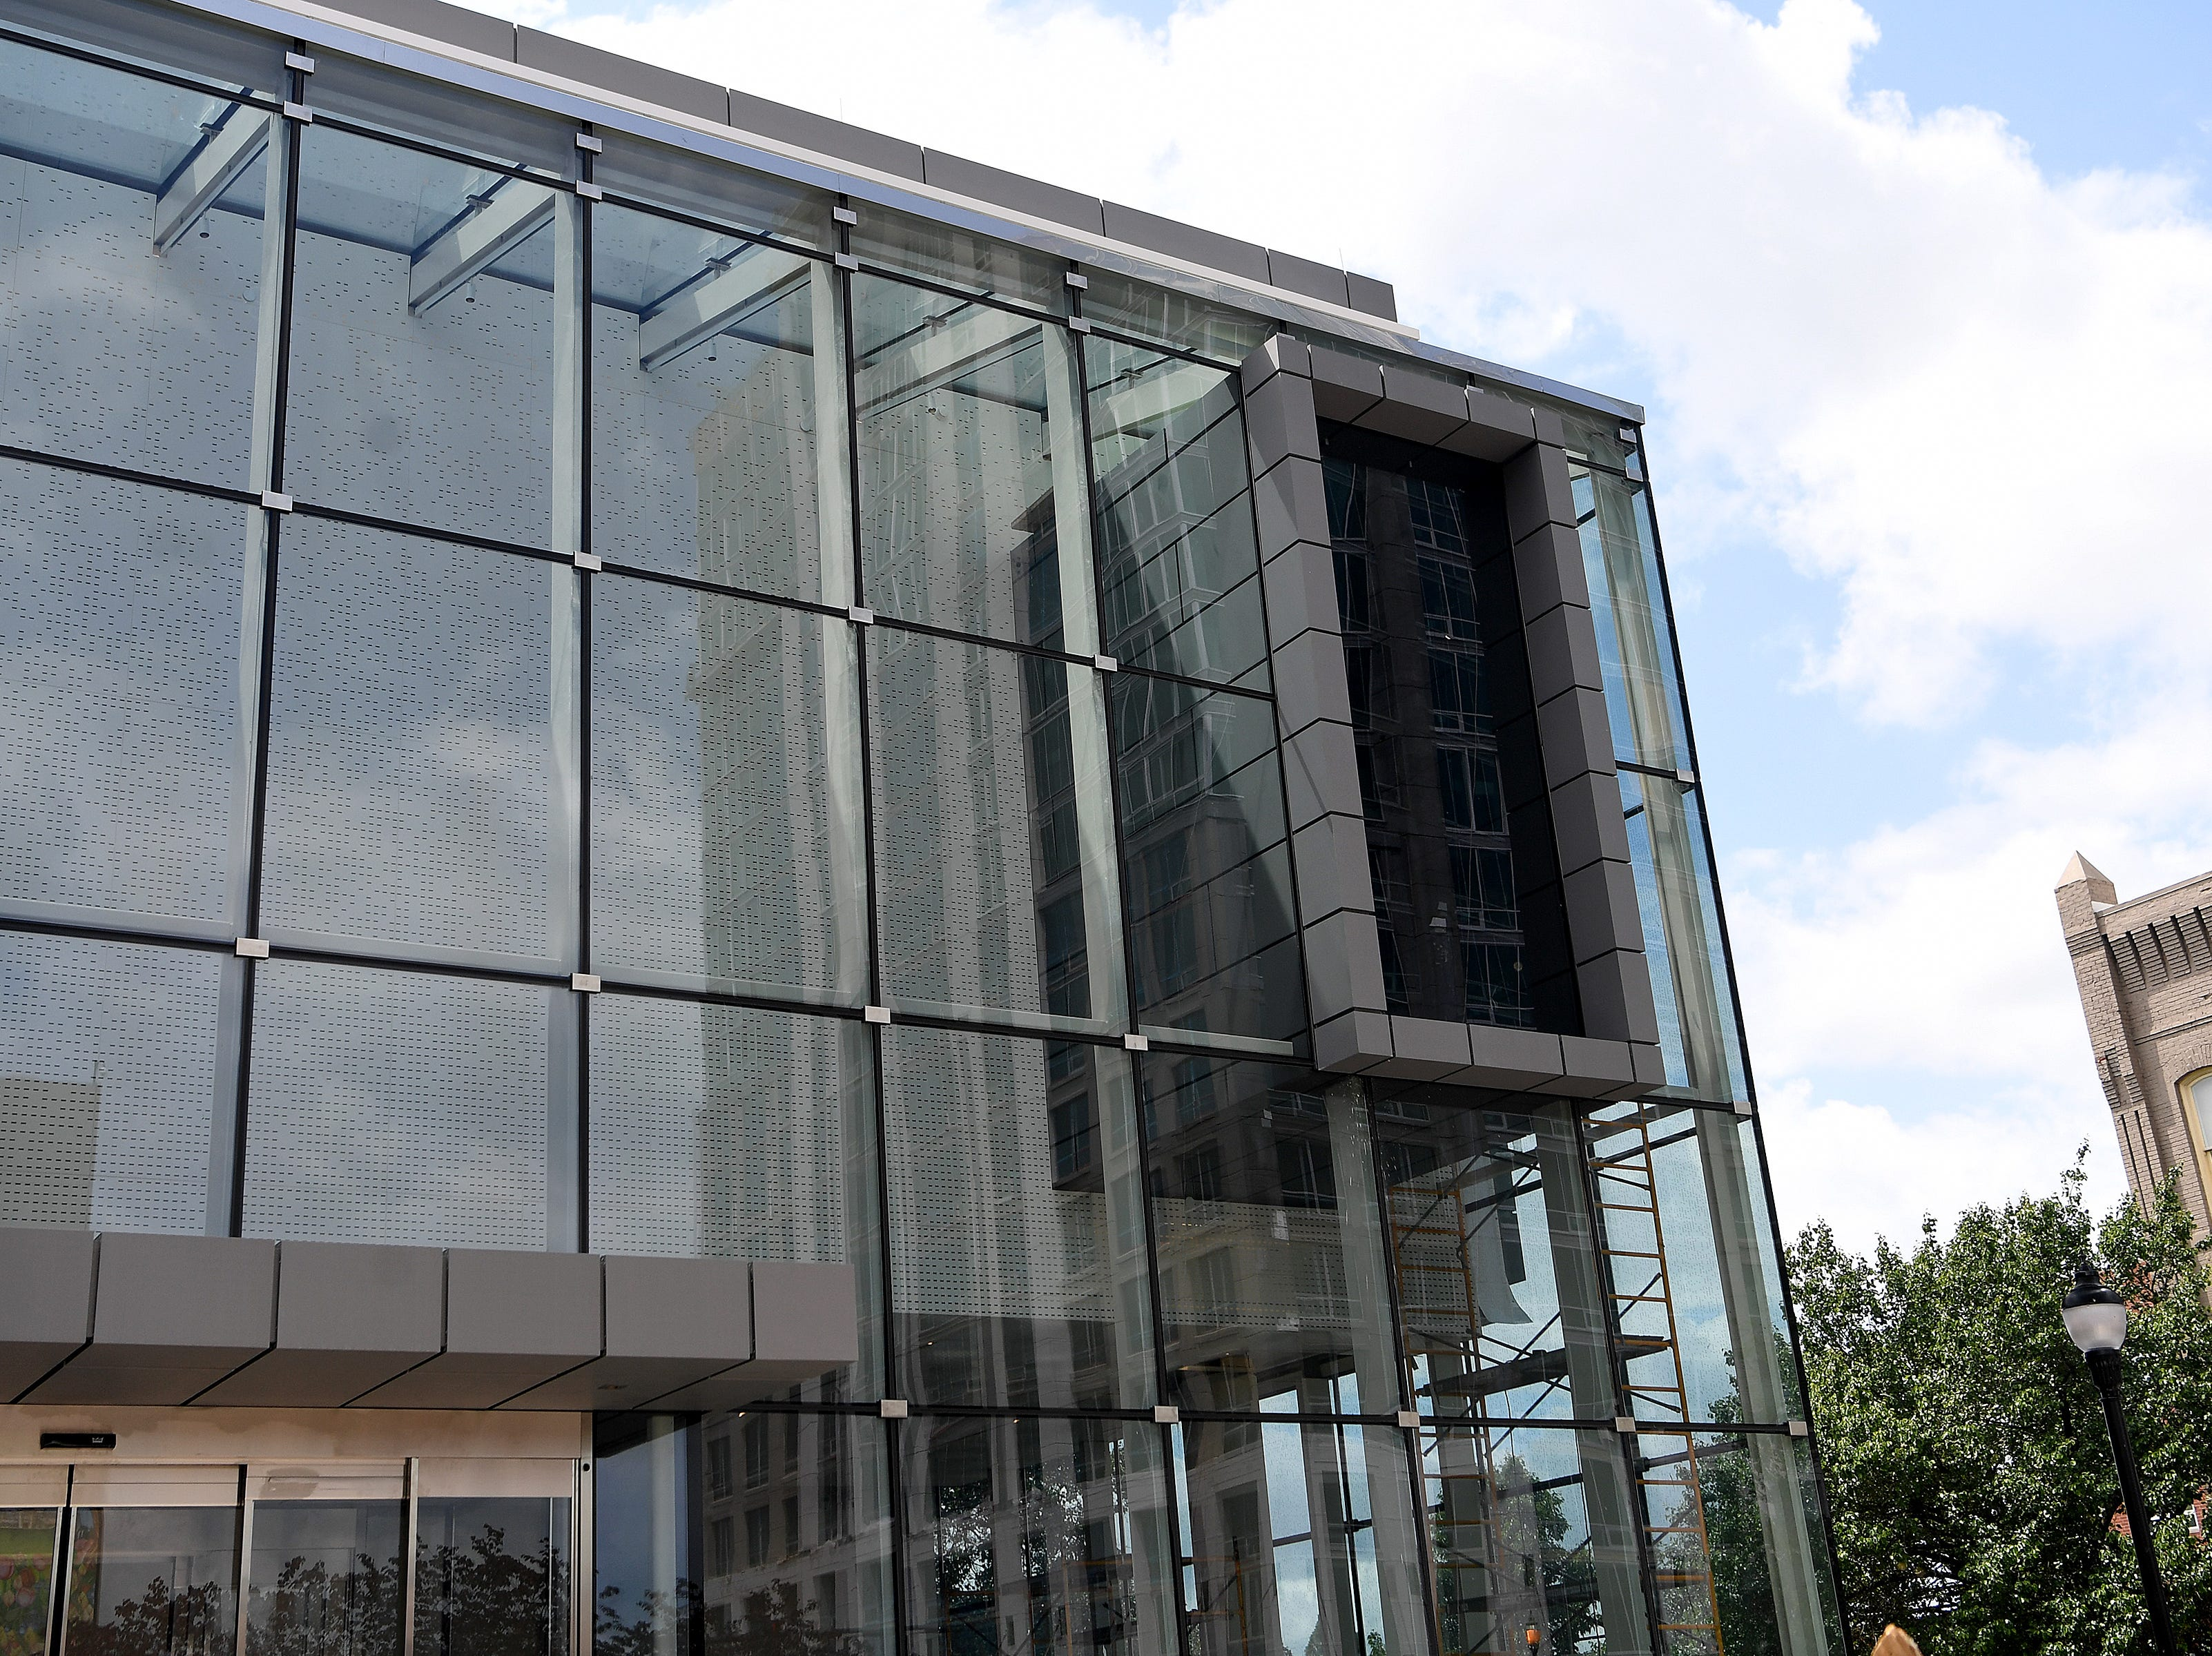 The front of the new Asheville Art Museum features a randomized perforated pattern that glows at night.  Construction is wrapping up in the museum which is part renovation, part historic preservation of the 1926 Pack Library building and part new construction.